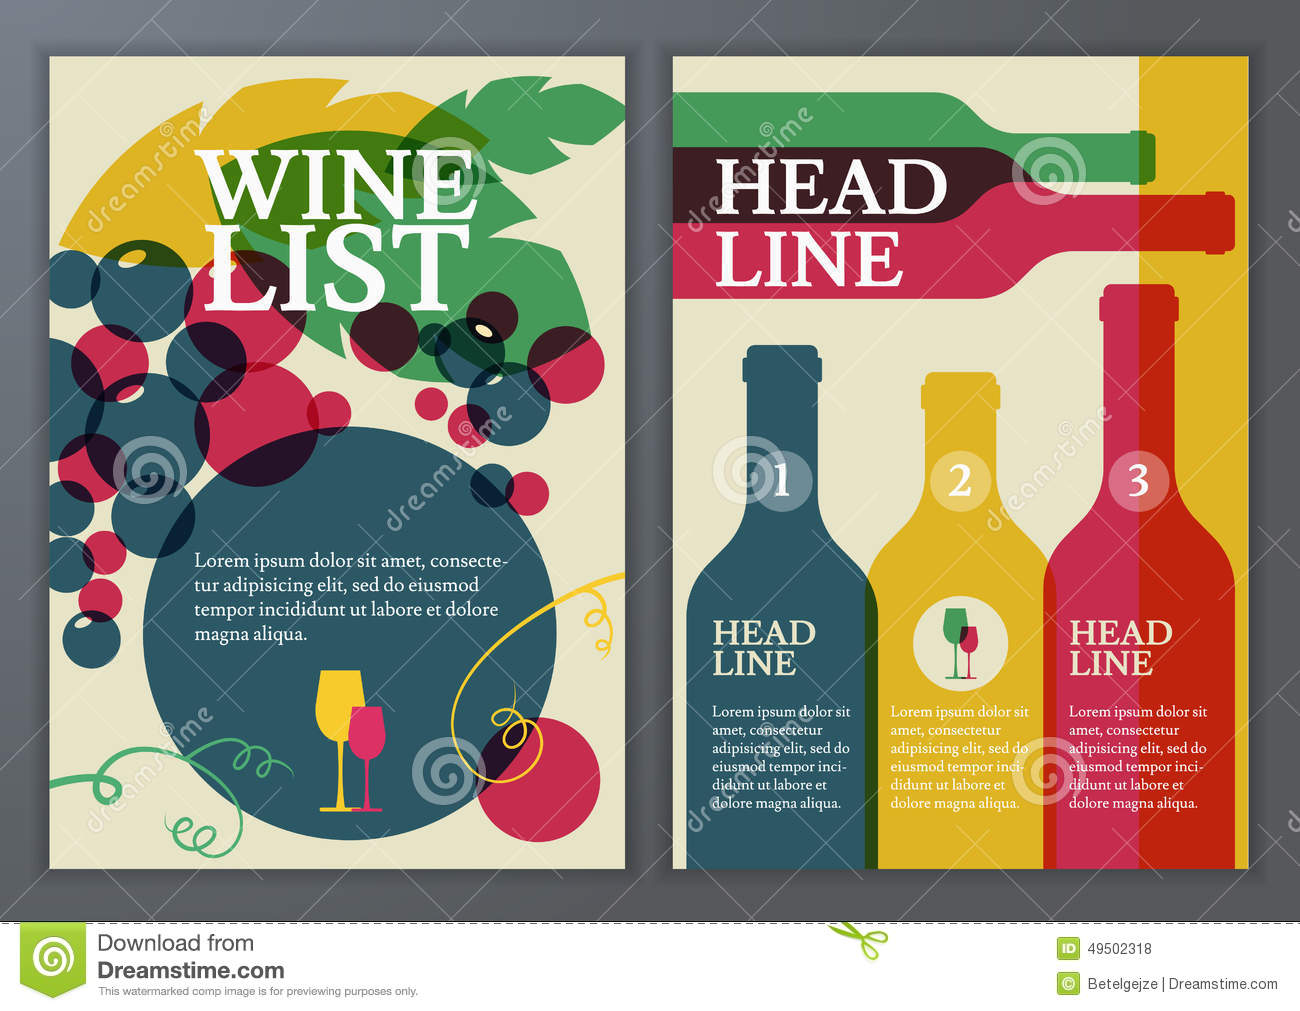 free wine list template download - Vatoz.atozdevelopment.co